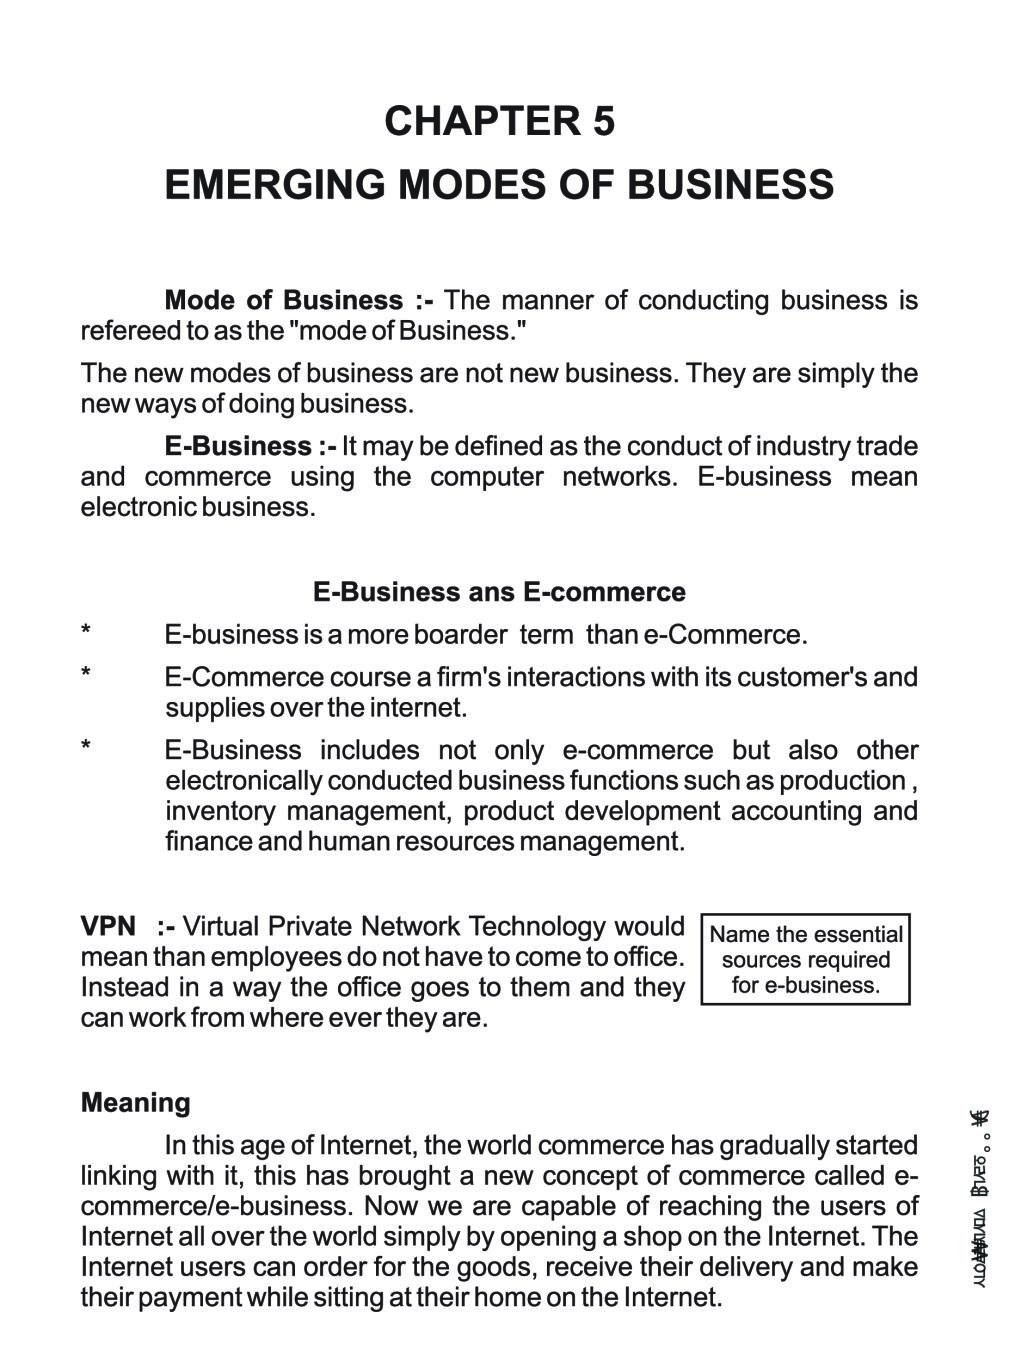 Class 11 Business Studies Notes for Emerging Modes of